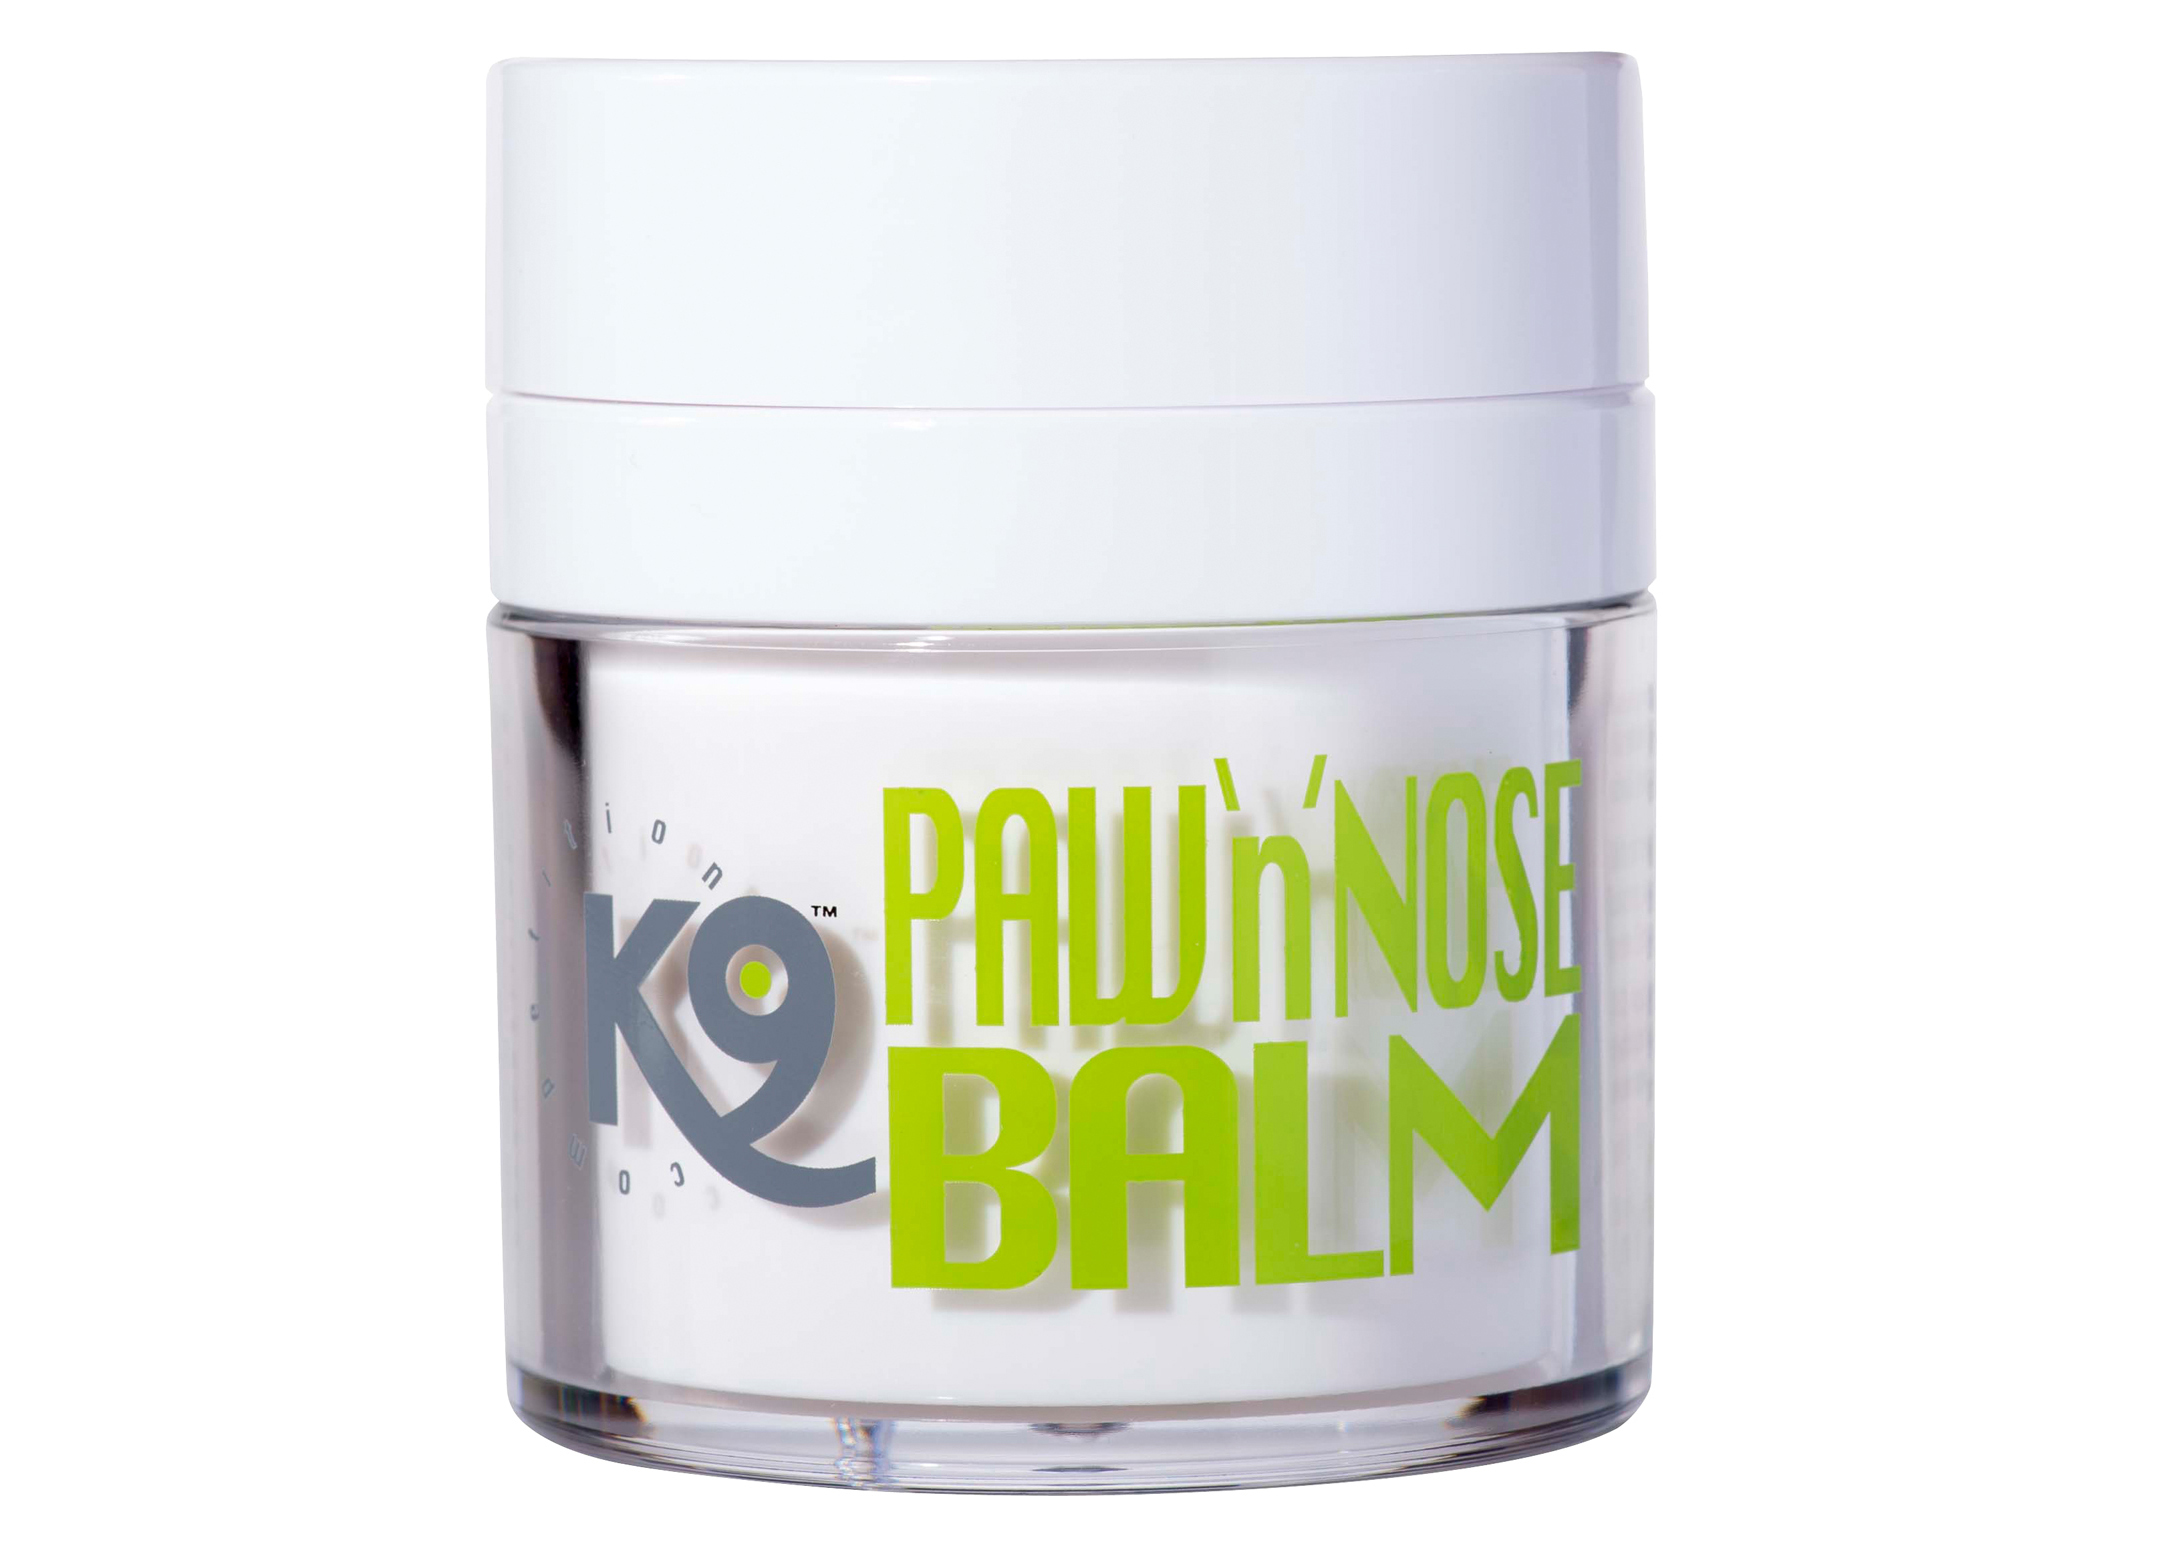 K9 Paw 'n' Nose Balsem 50ml